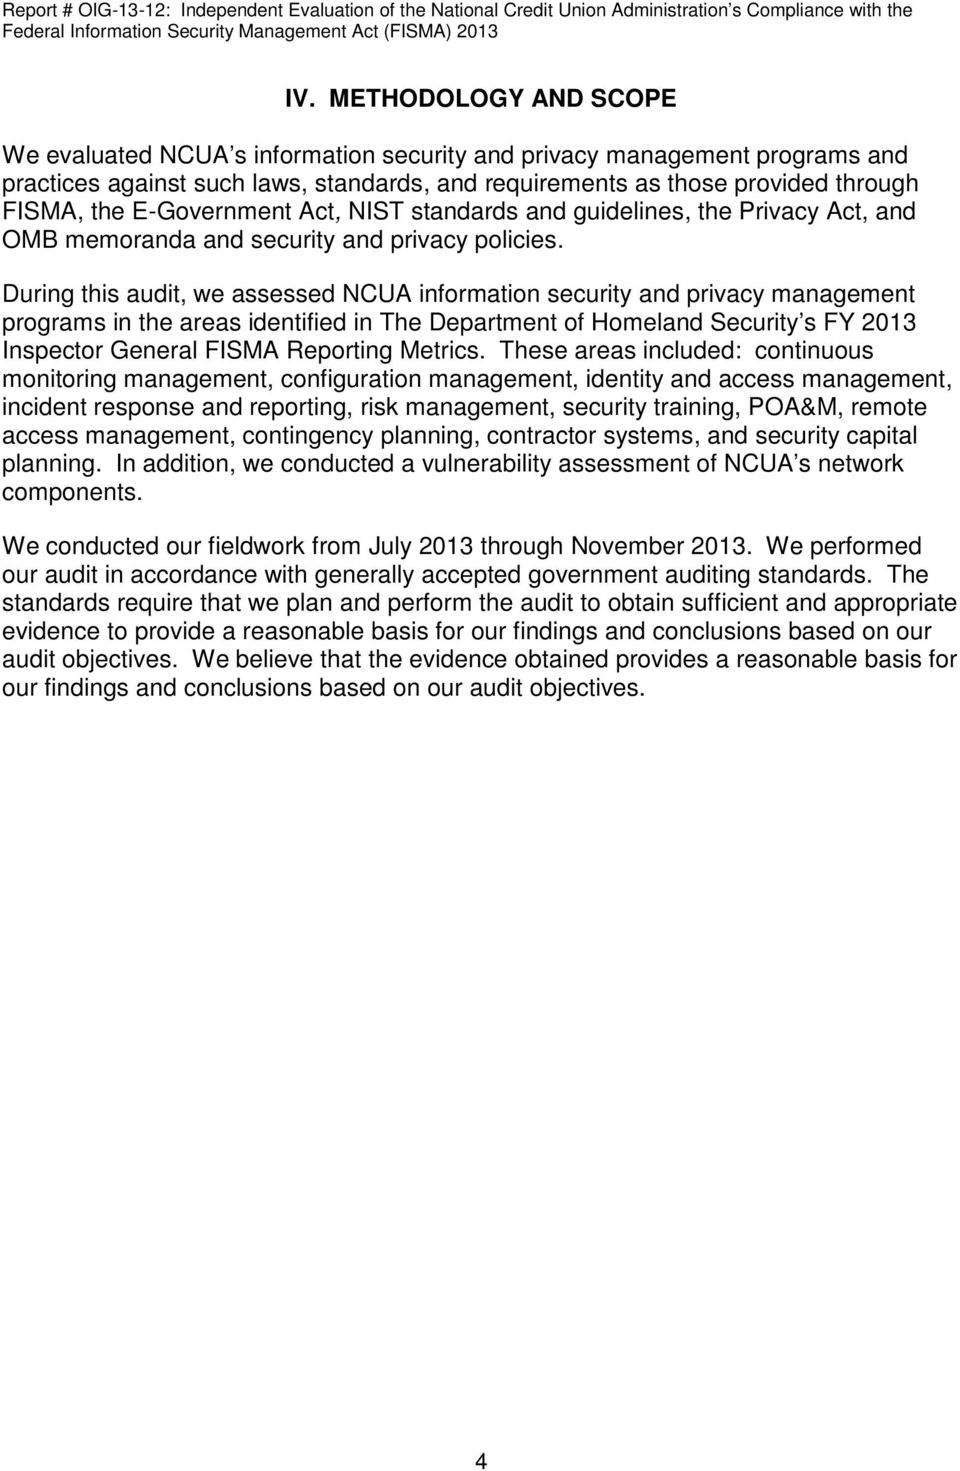 During this audit, we assessed NCUA information security and privacy management programs in the areas identified in The Department of Homeland Security s FY 2013 Inspector General FISMA Reporting